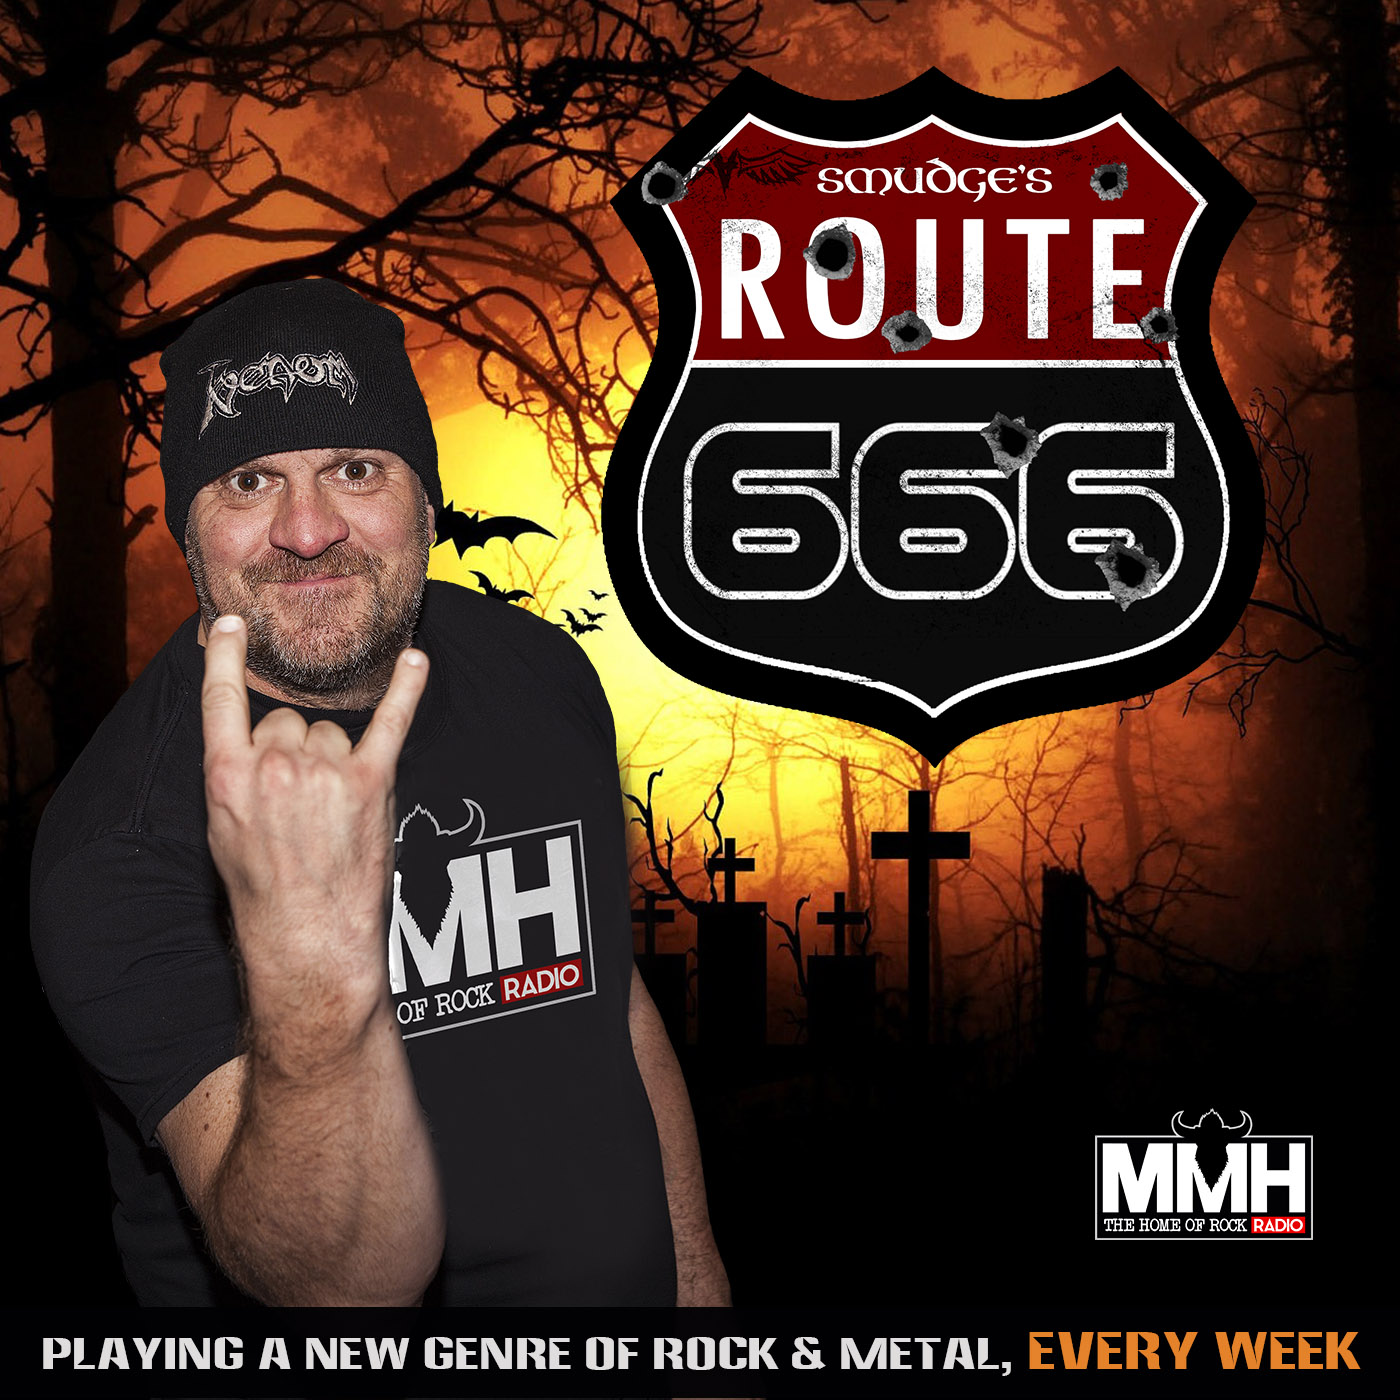 MMH - The Home Of Rock Radio